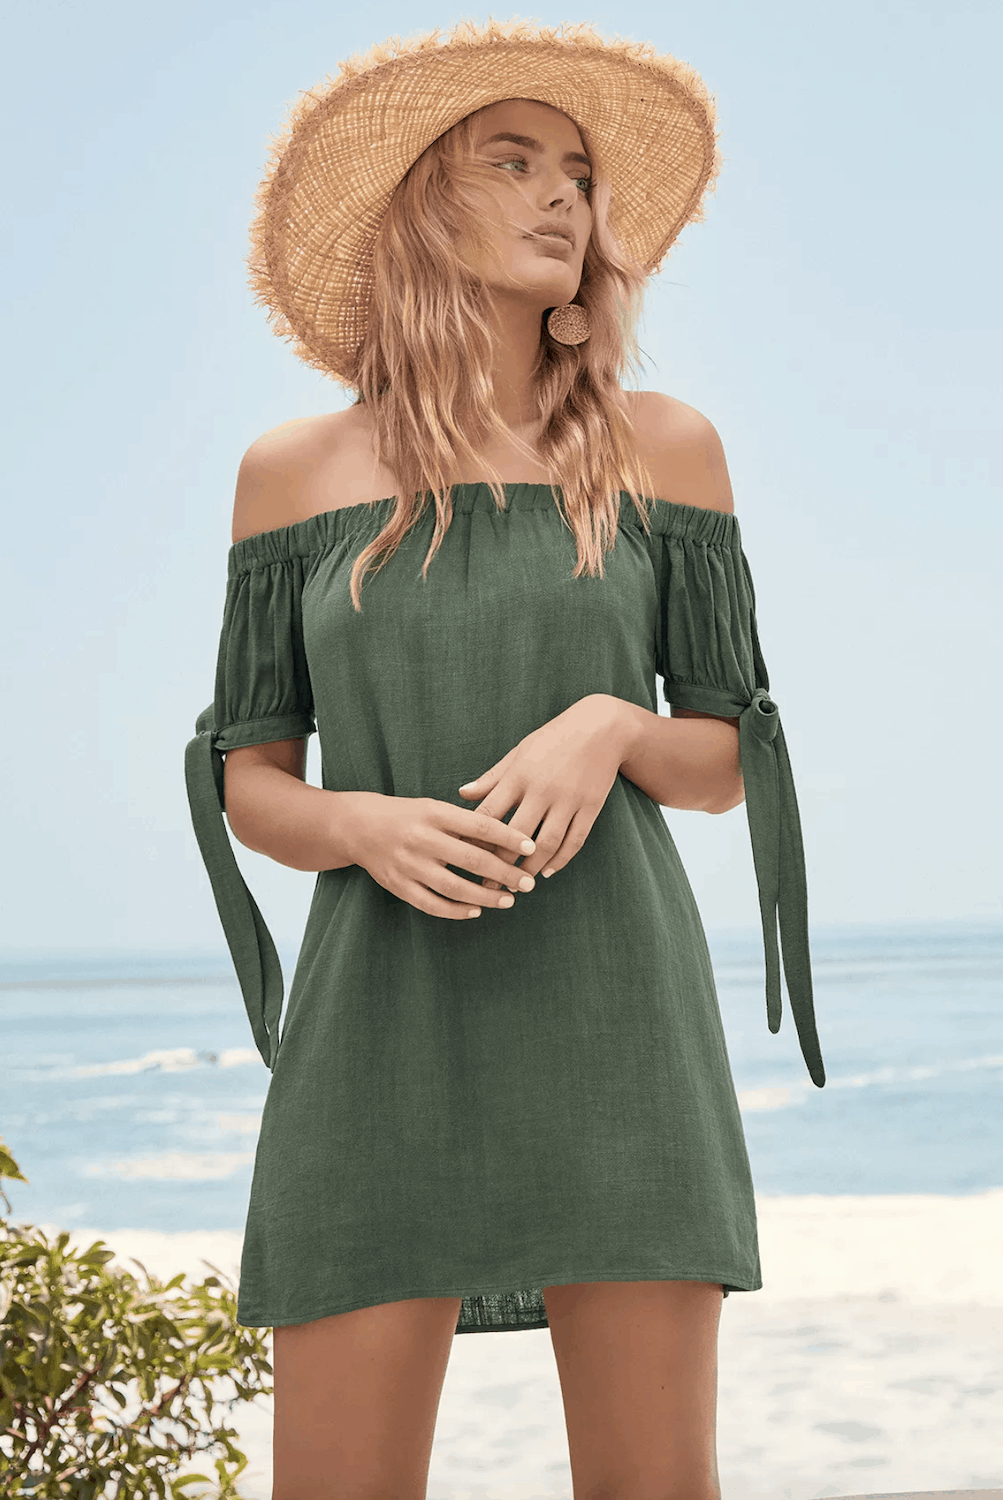 Positano Outfits Cute Dresses Al Fresco Evenings Olive Green Off The Shoulder Dress Lulus